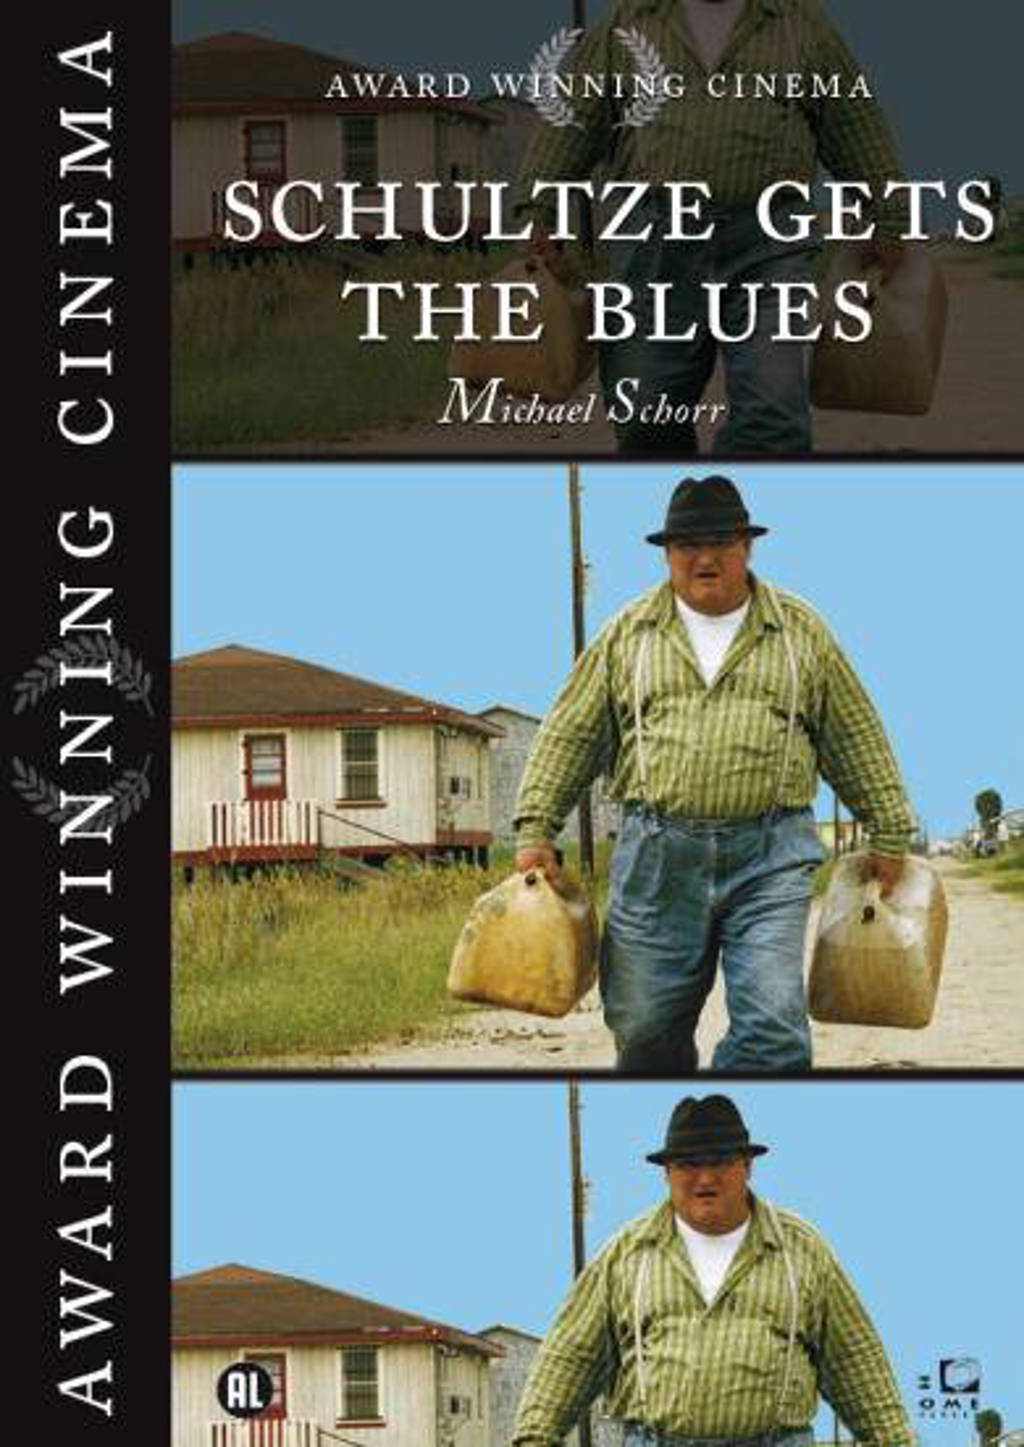 Schultze gets the blues (DVD)